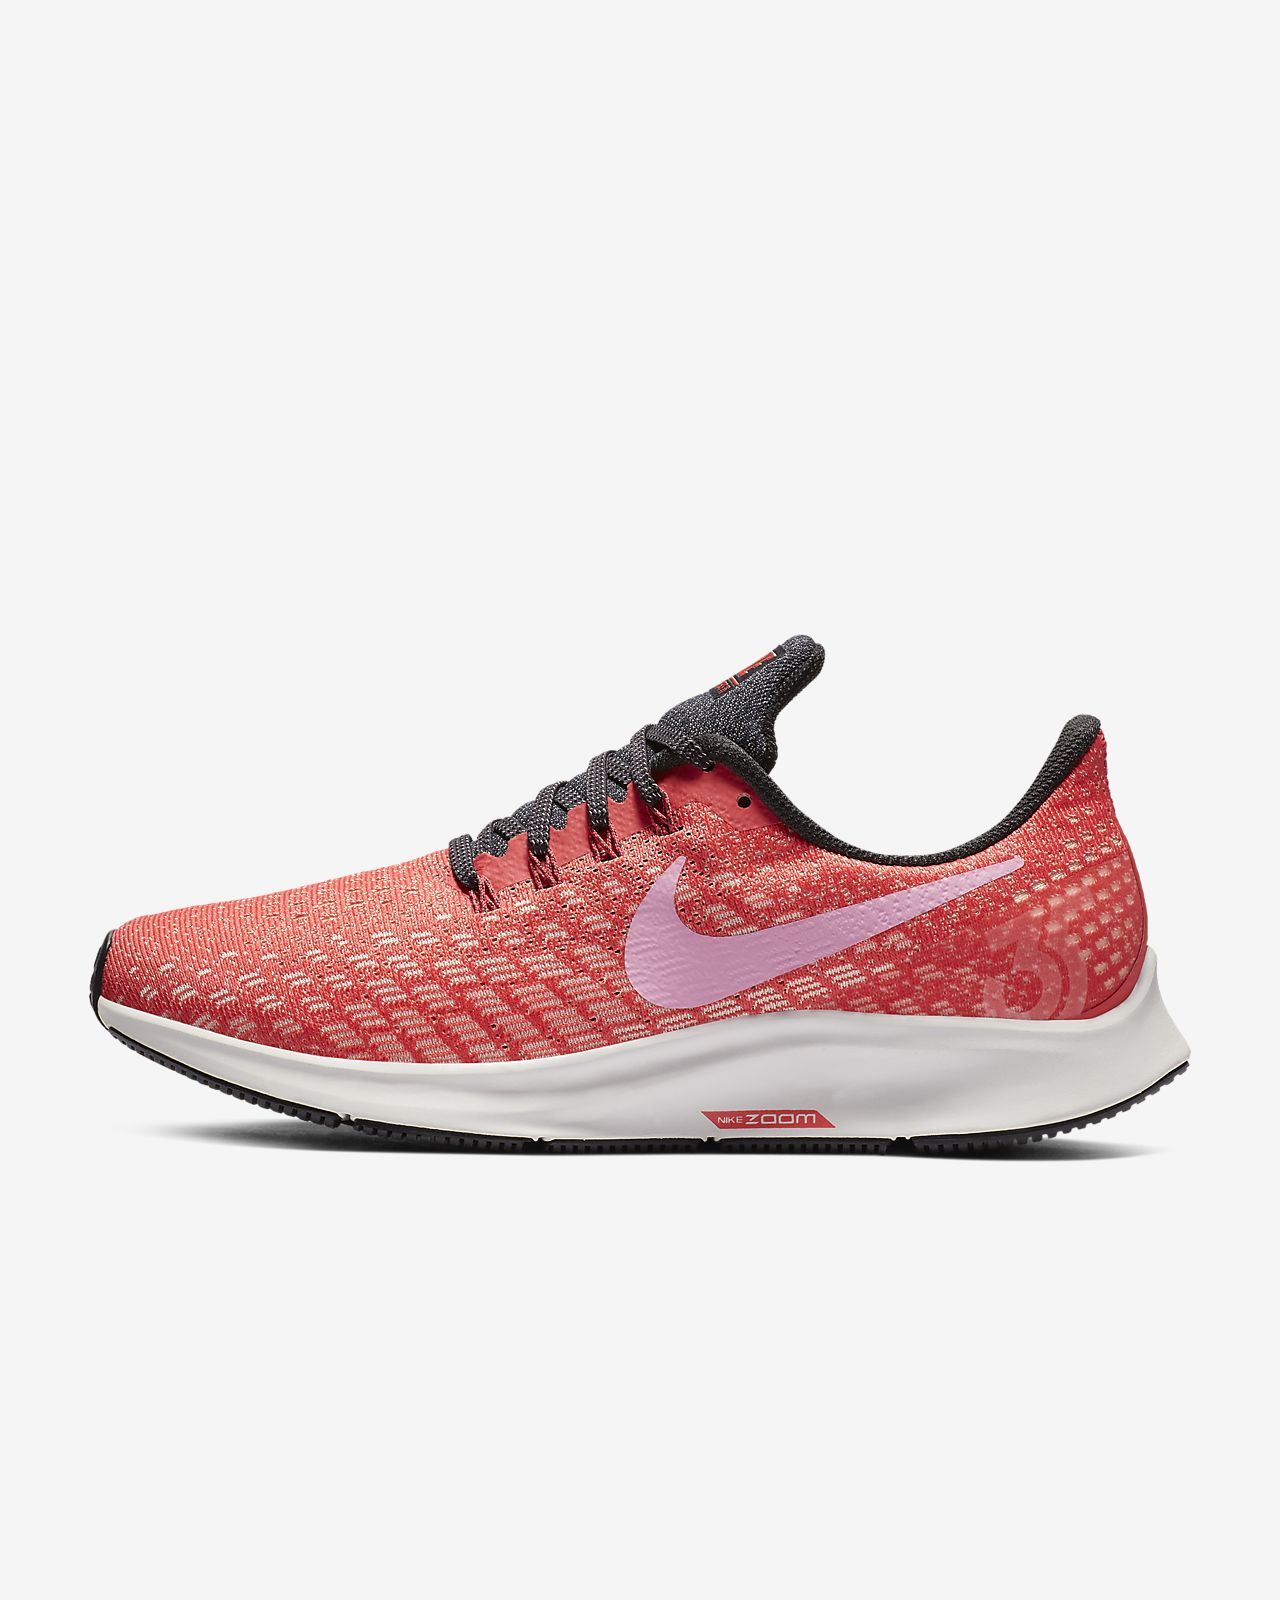 9cd22b2a283b Nike Air Zoom Pegasus 35 Women s Running Shoe. Nike.com GB